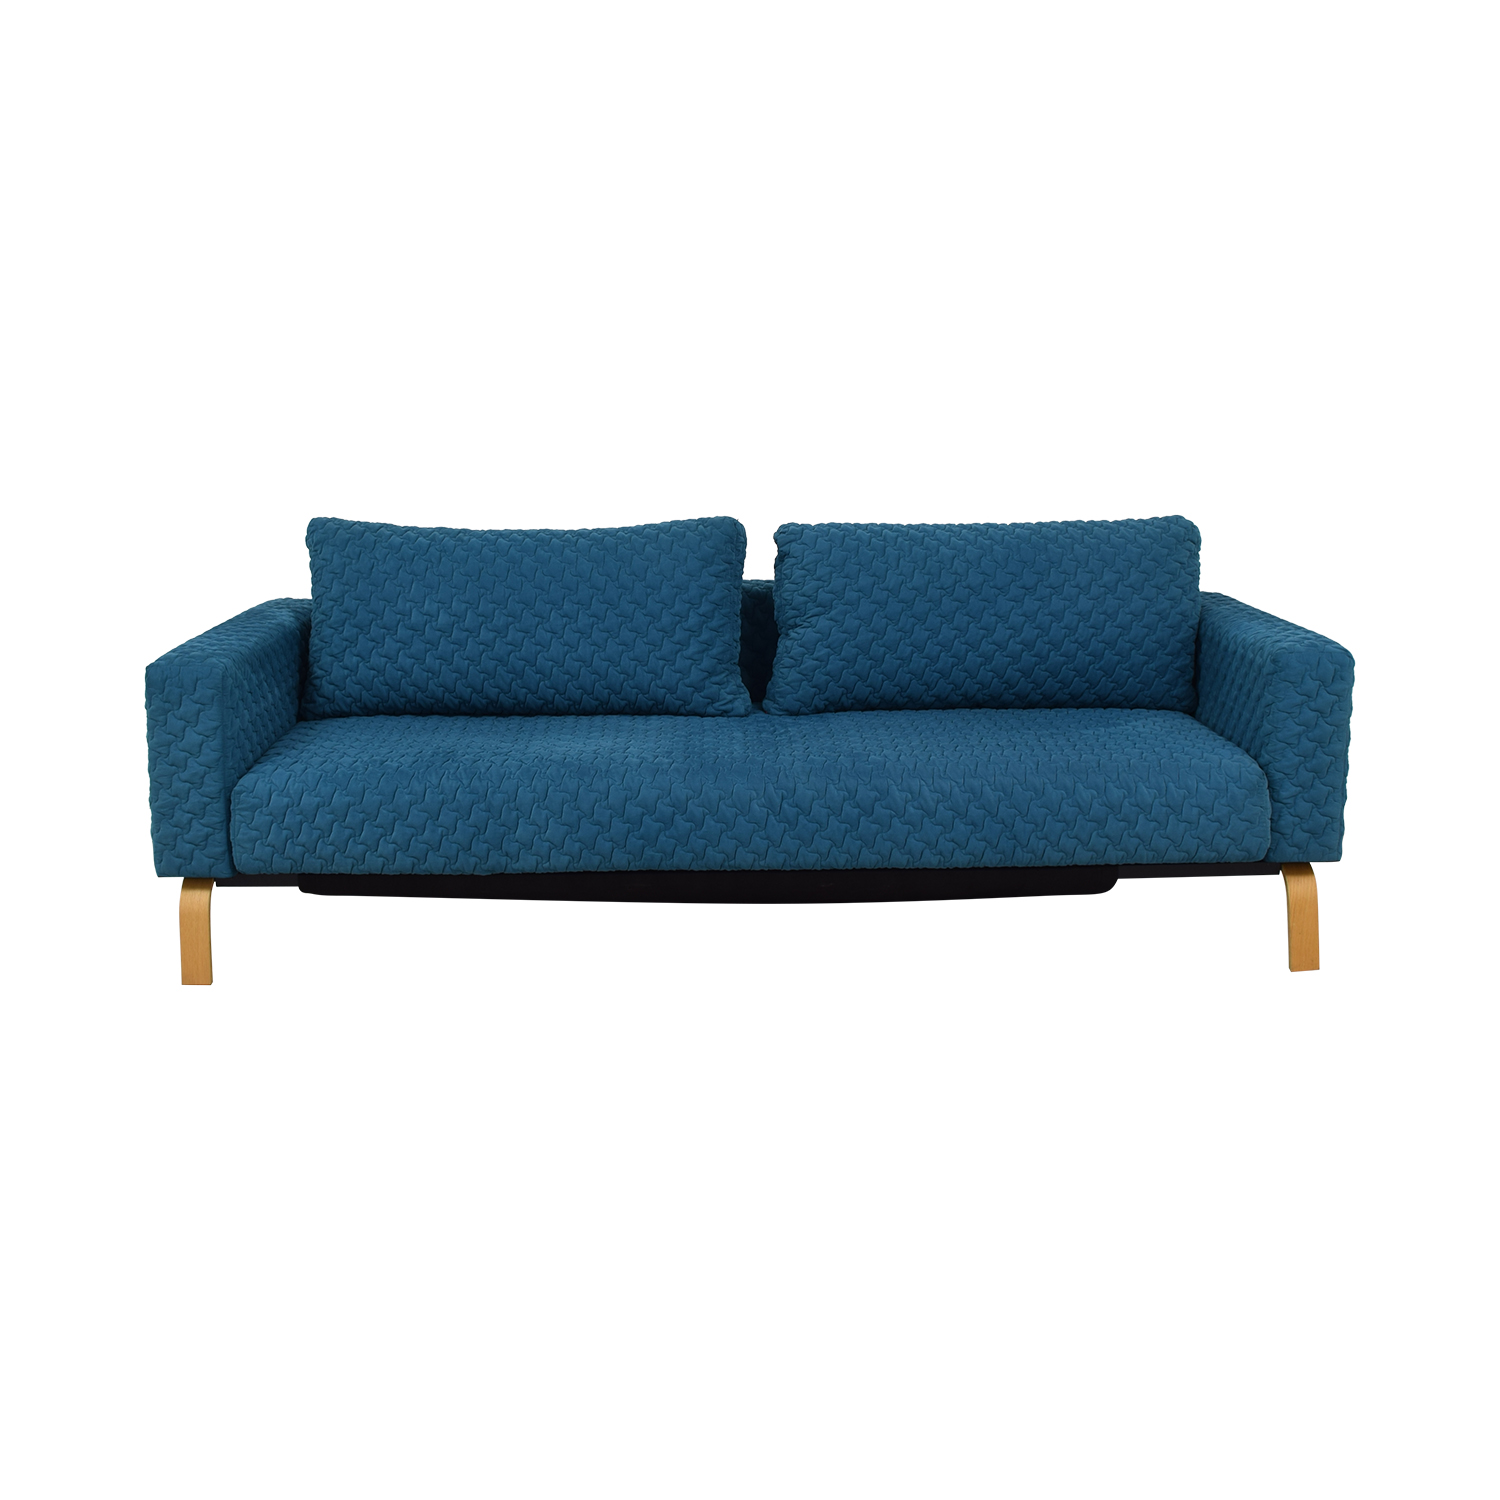 Innovation Living Inc Innovation Living Inc Blue Single Cushion Sleep Sofa nj